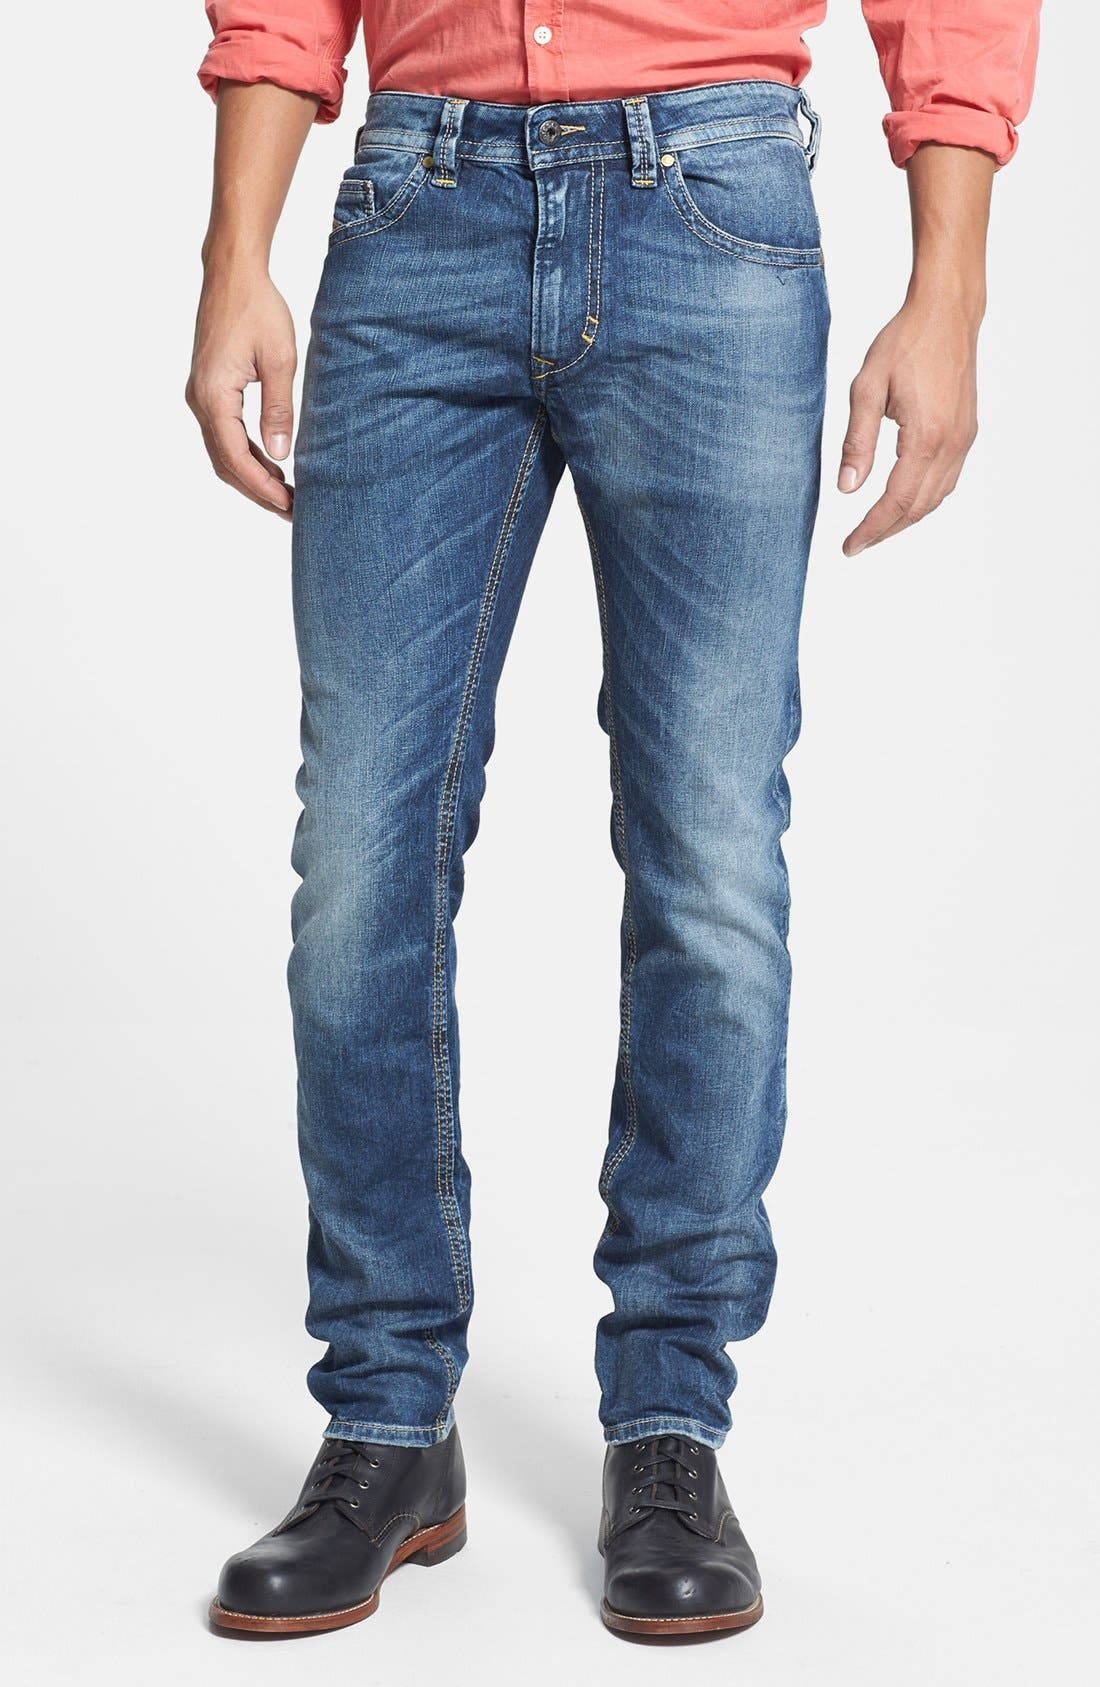 Alternate Image 1 Selected - DIESEL® 'Thavar' Skinny Fit Jeans (827I)